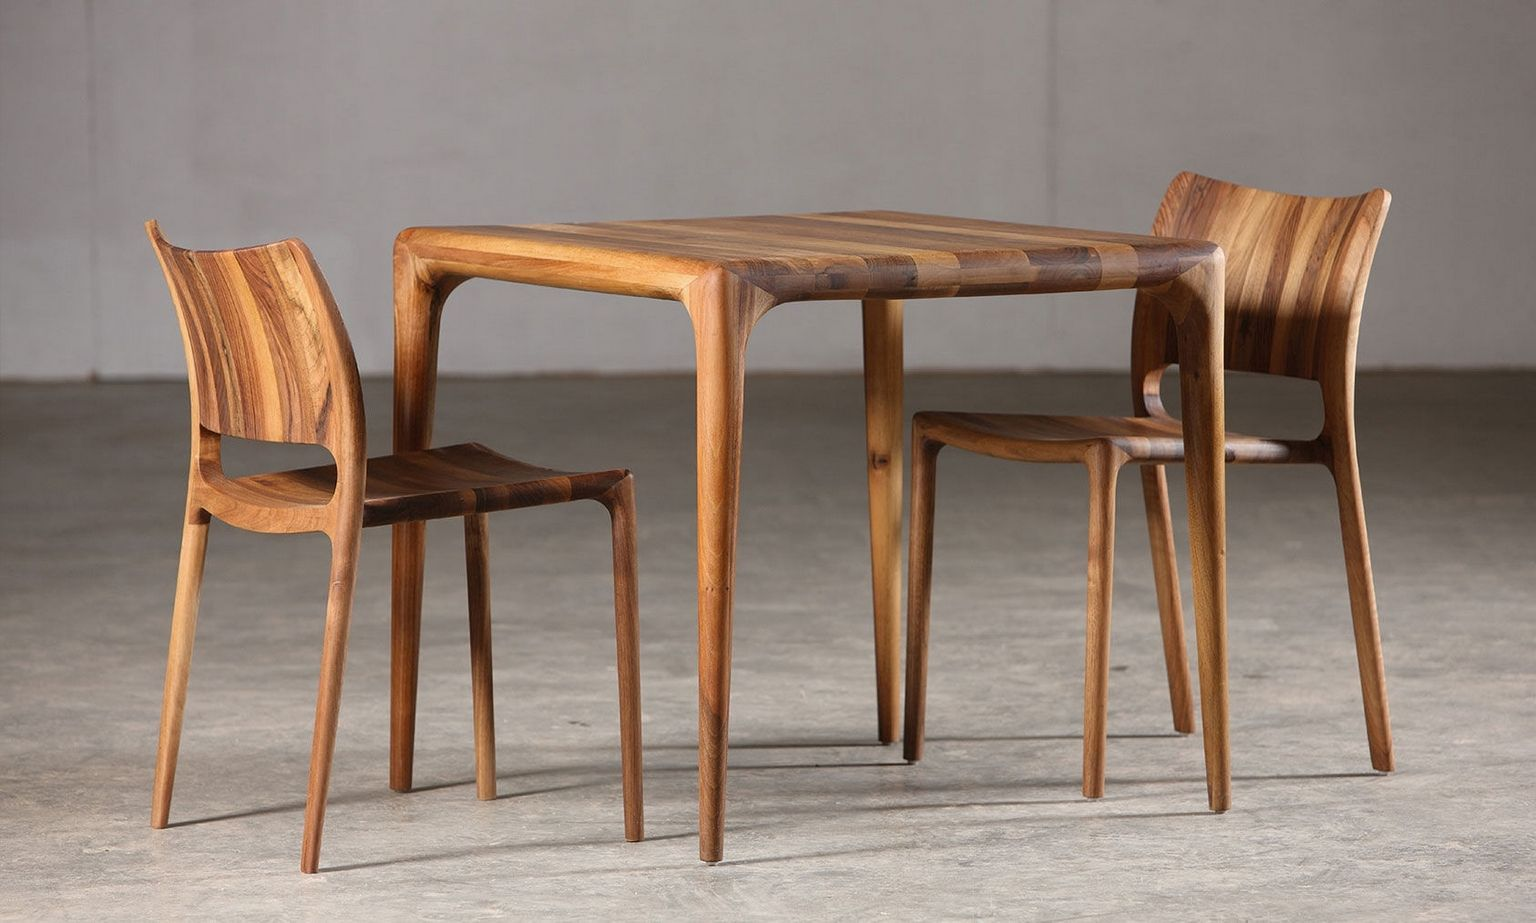 Solid Wood Furniture For Eco Friendly Homes Esszimmertisch Holz